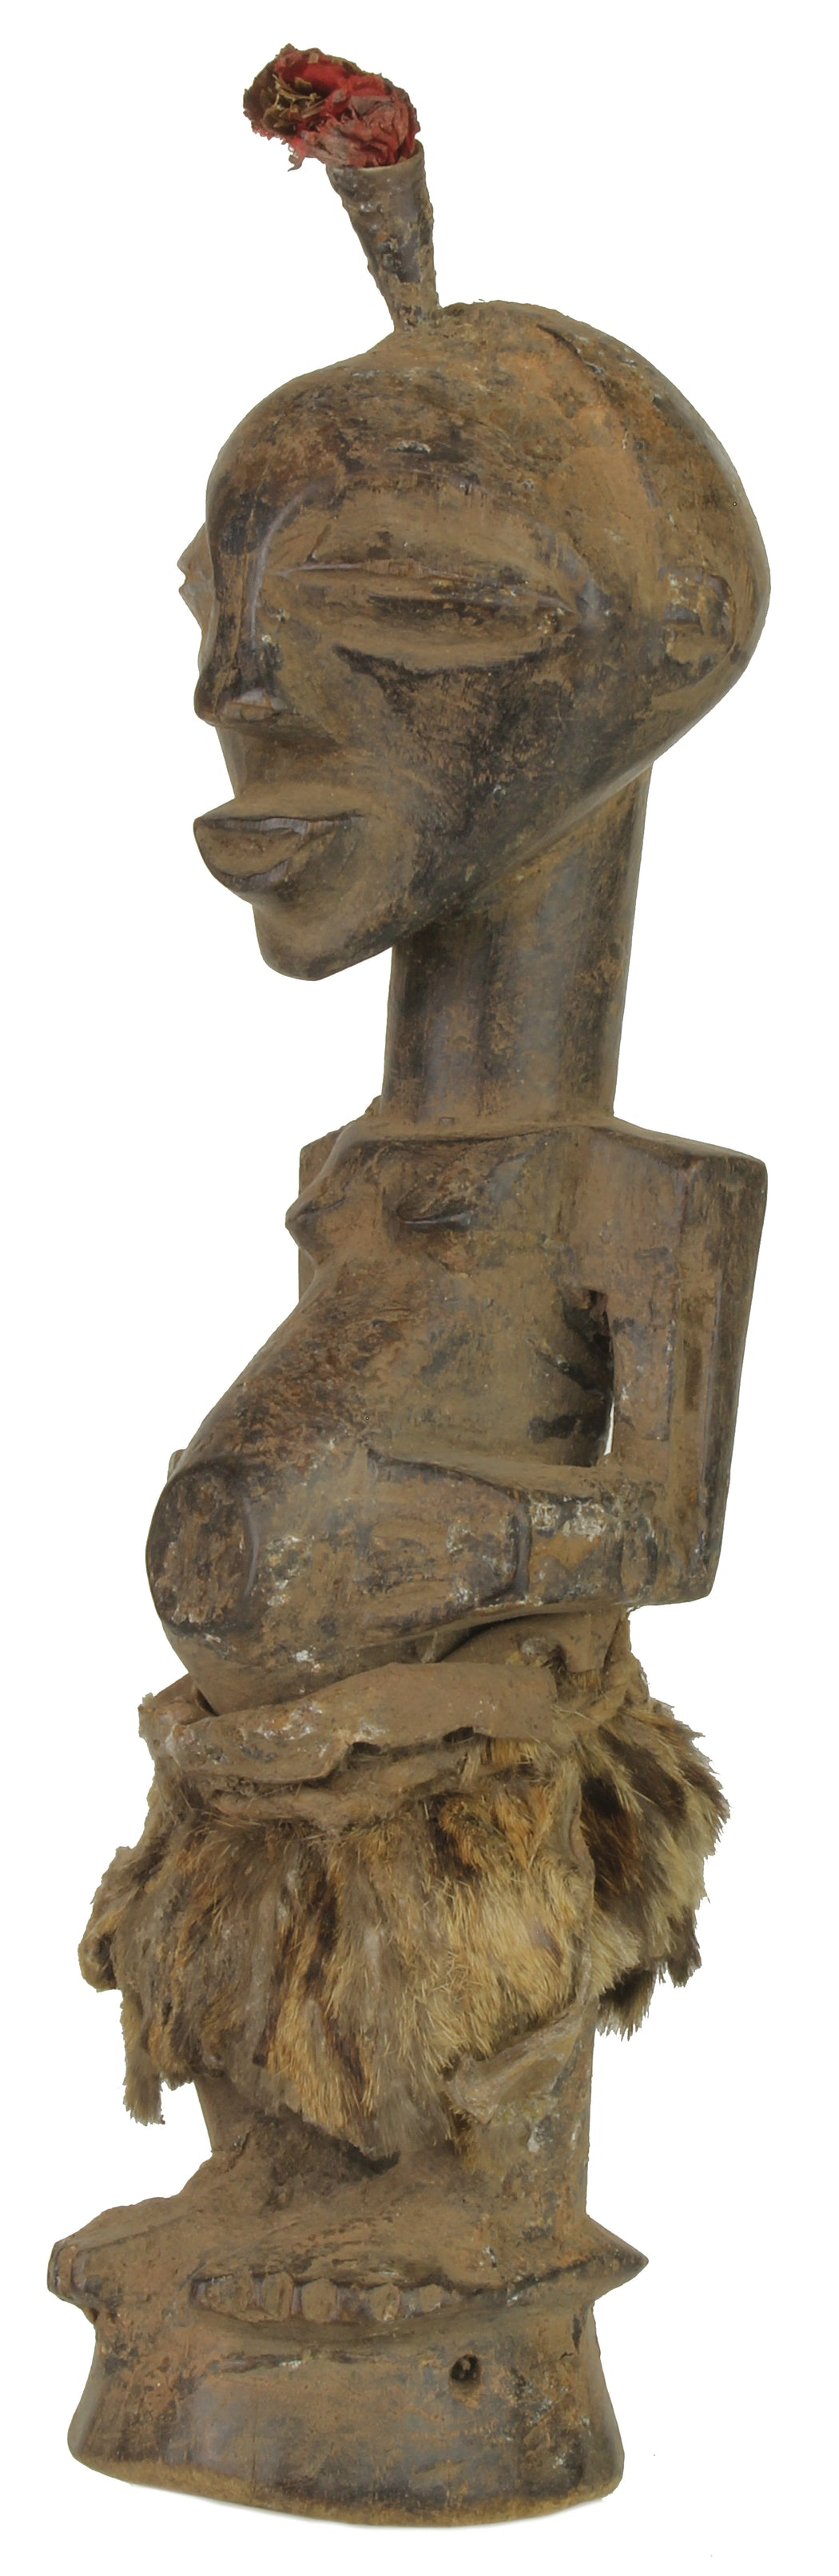 "Songye Tribal Power Figure Statue of Congo | 11"" - Niger Bend"